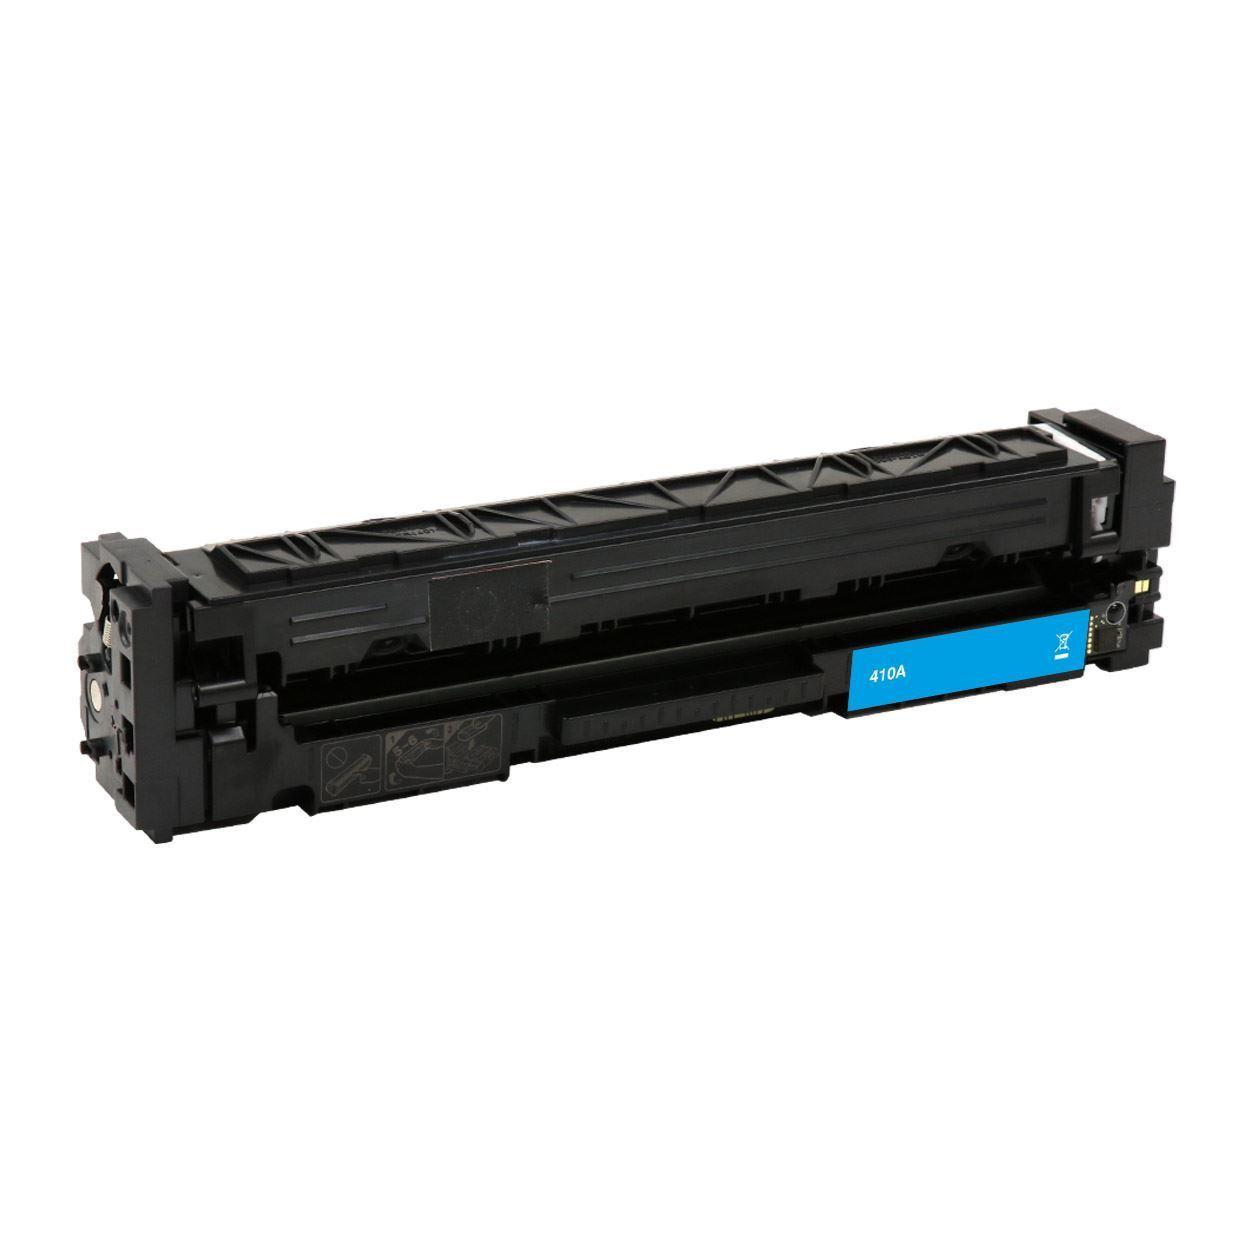 Compatible HP 410A CF411A Cyan Toner Cartridge - Economical Box